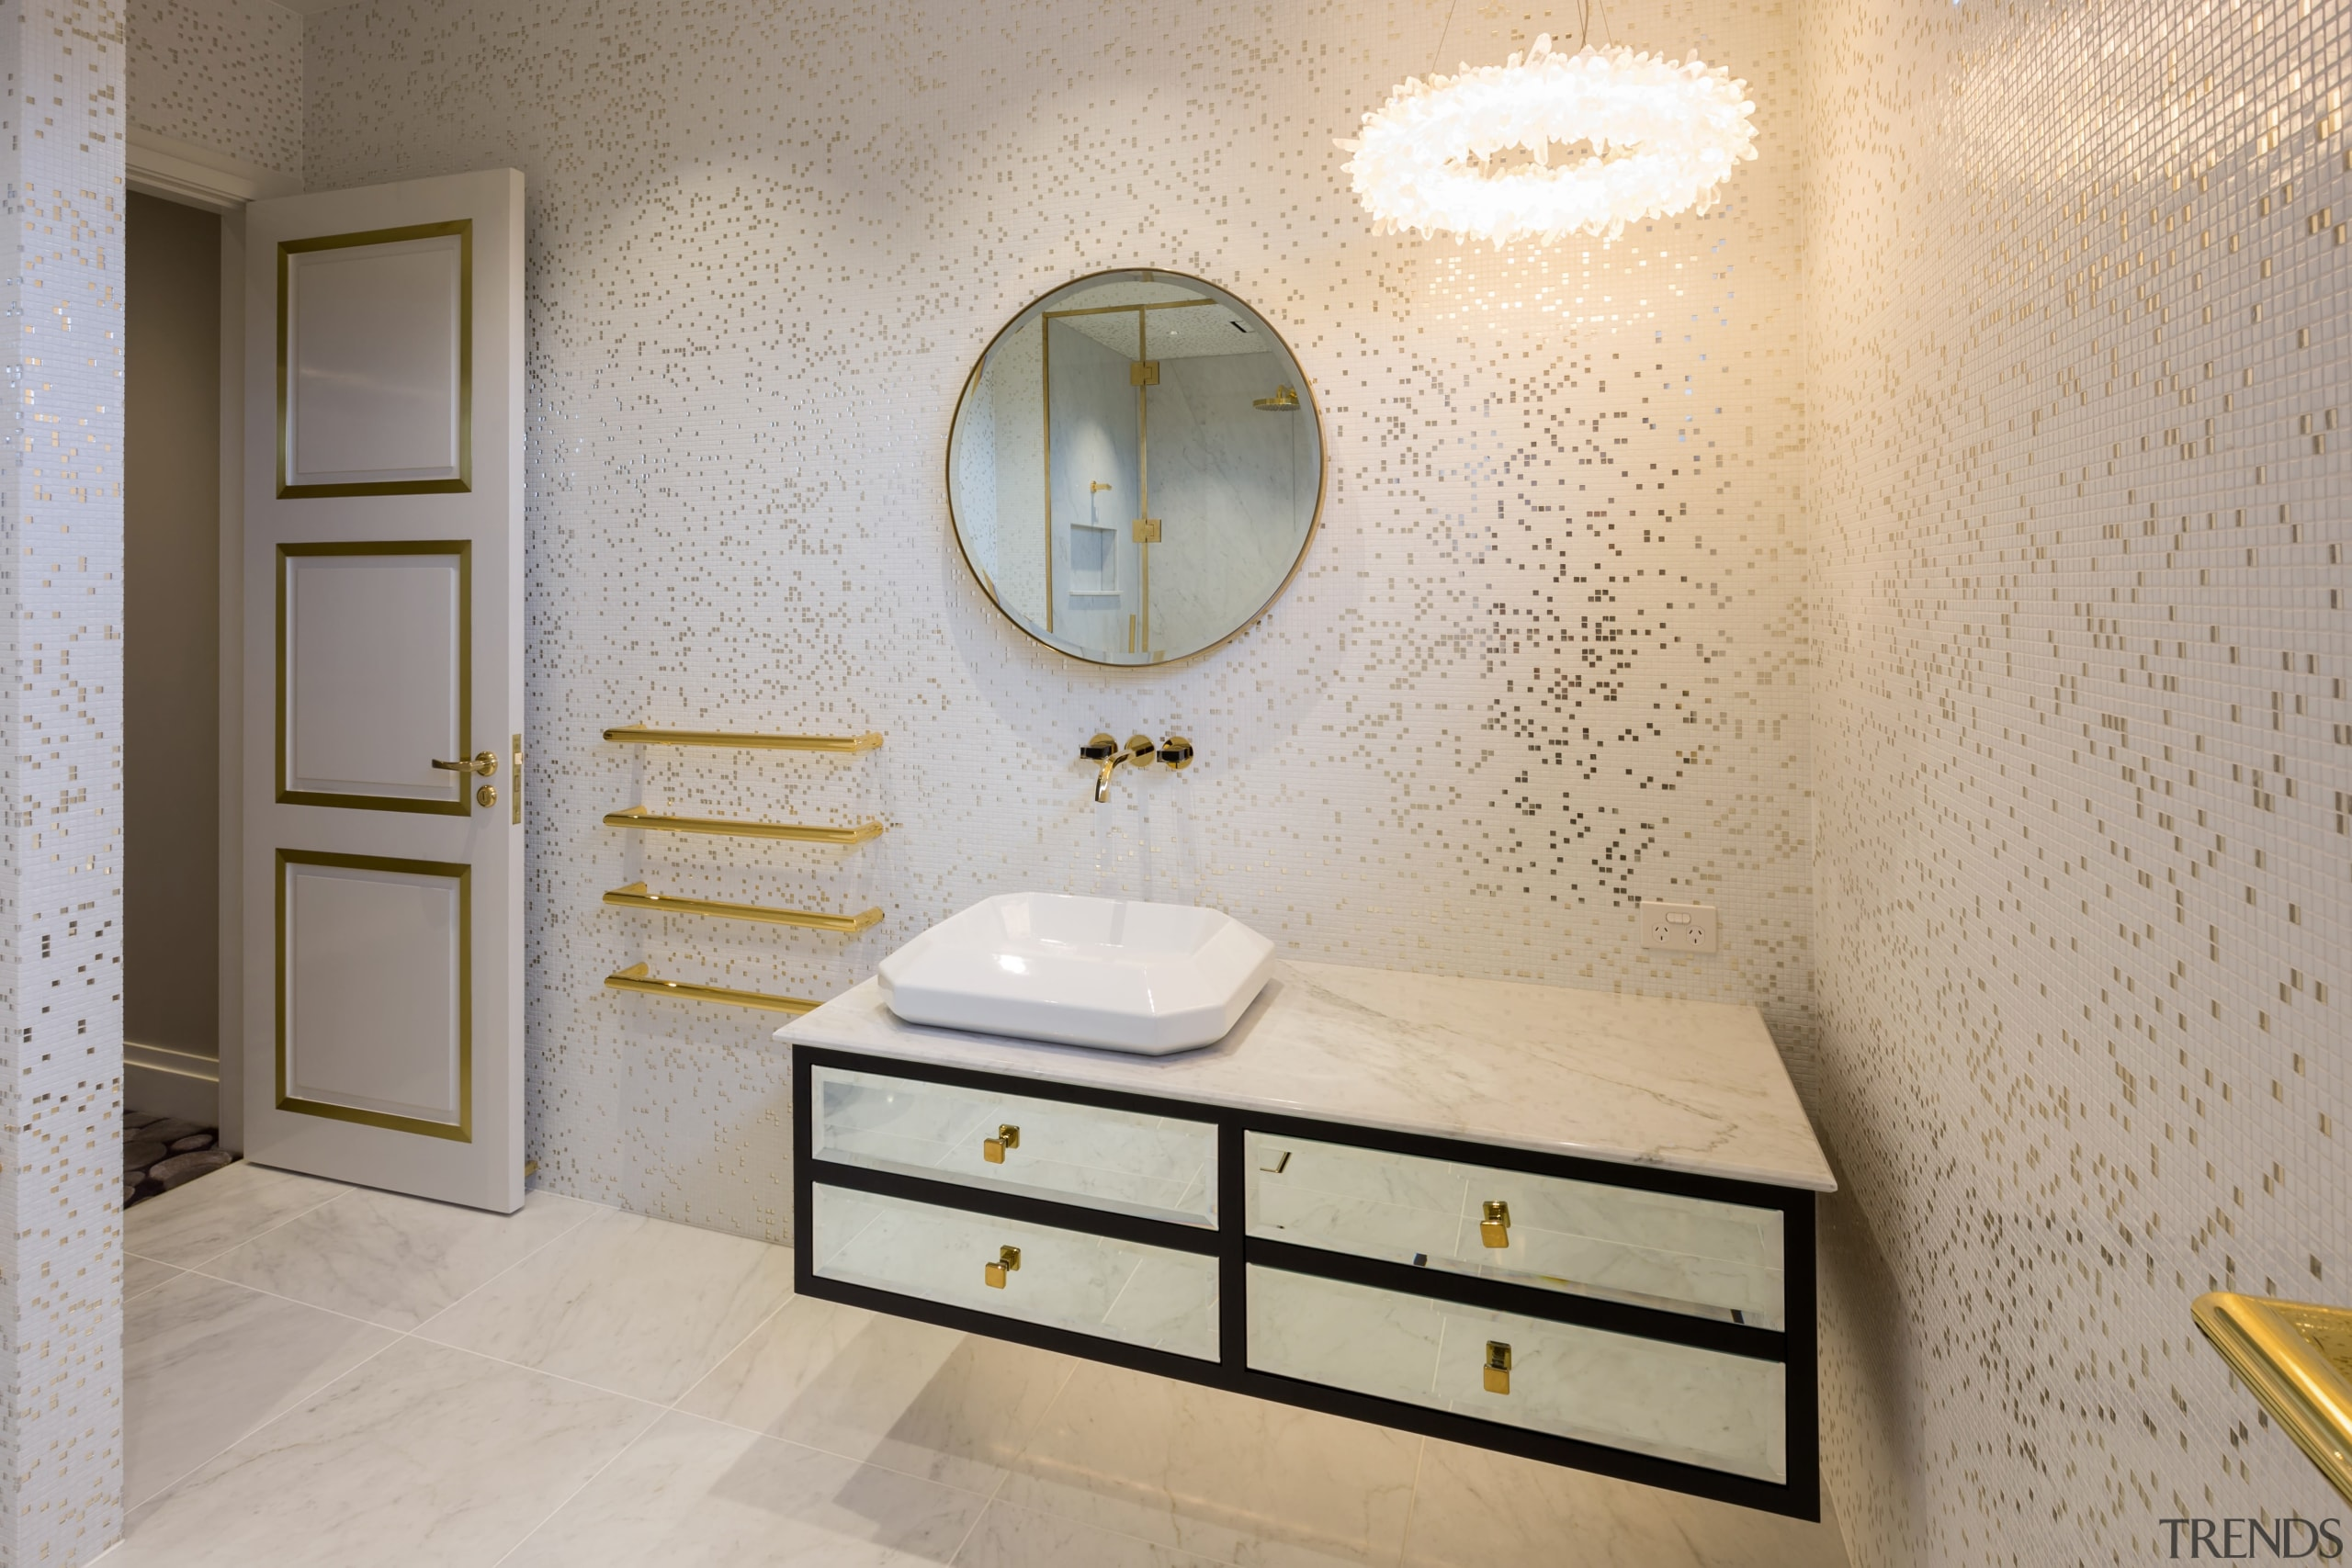 All that glisters white gold mosaic tiles, gold bathroom, floor, flooring, home, interior design, product design, room, sink, tile, wall, gray